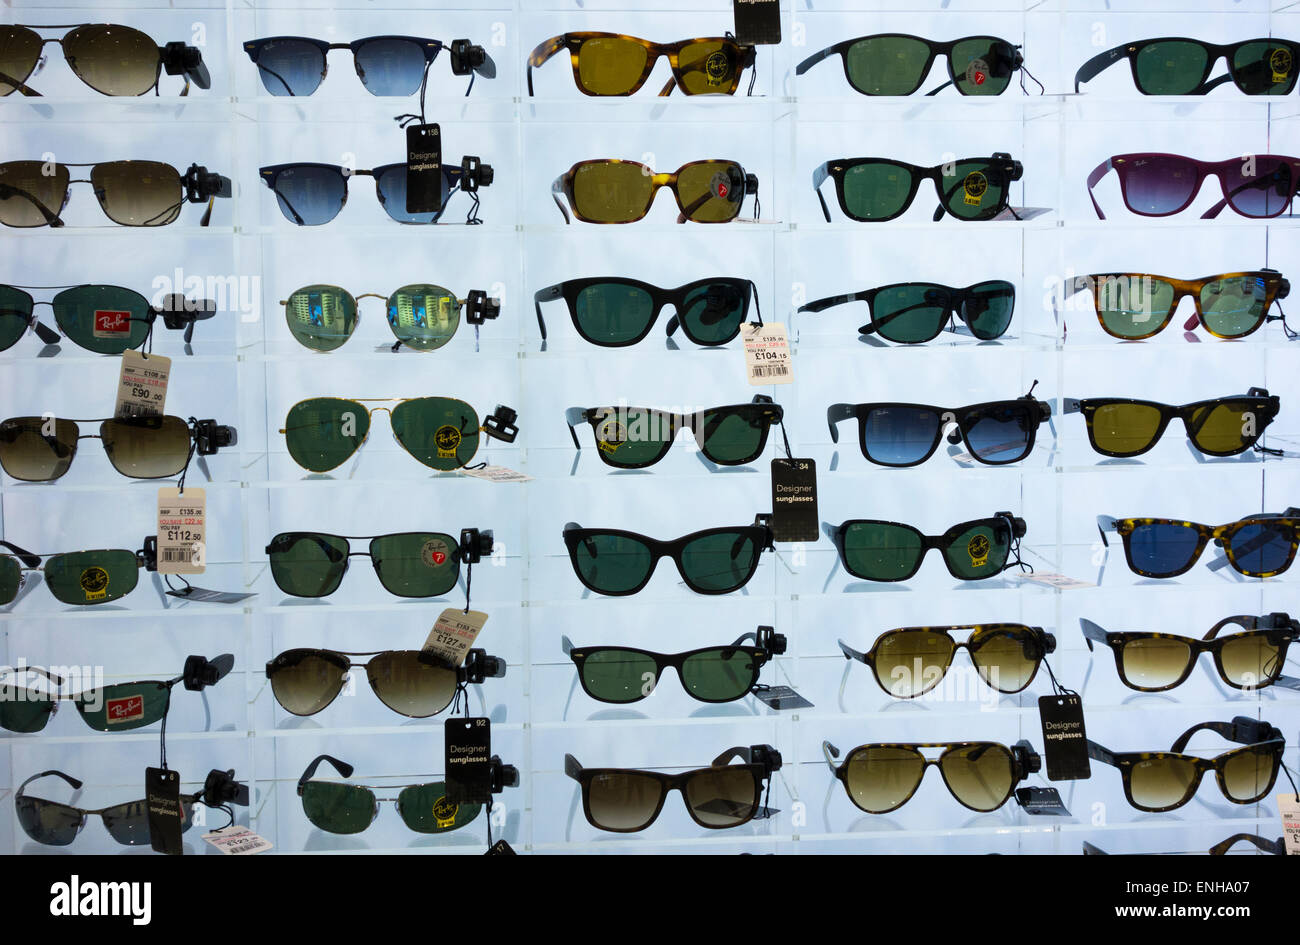 2af240be7b Ray Ban sunglasses display in UK airport duty free shop. - Stock Image